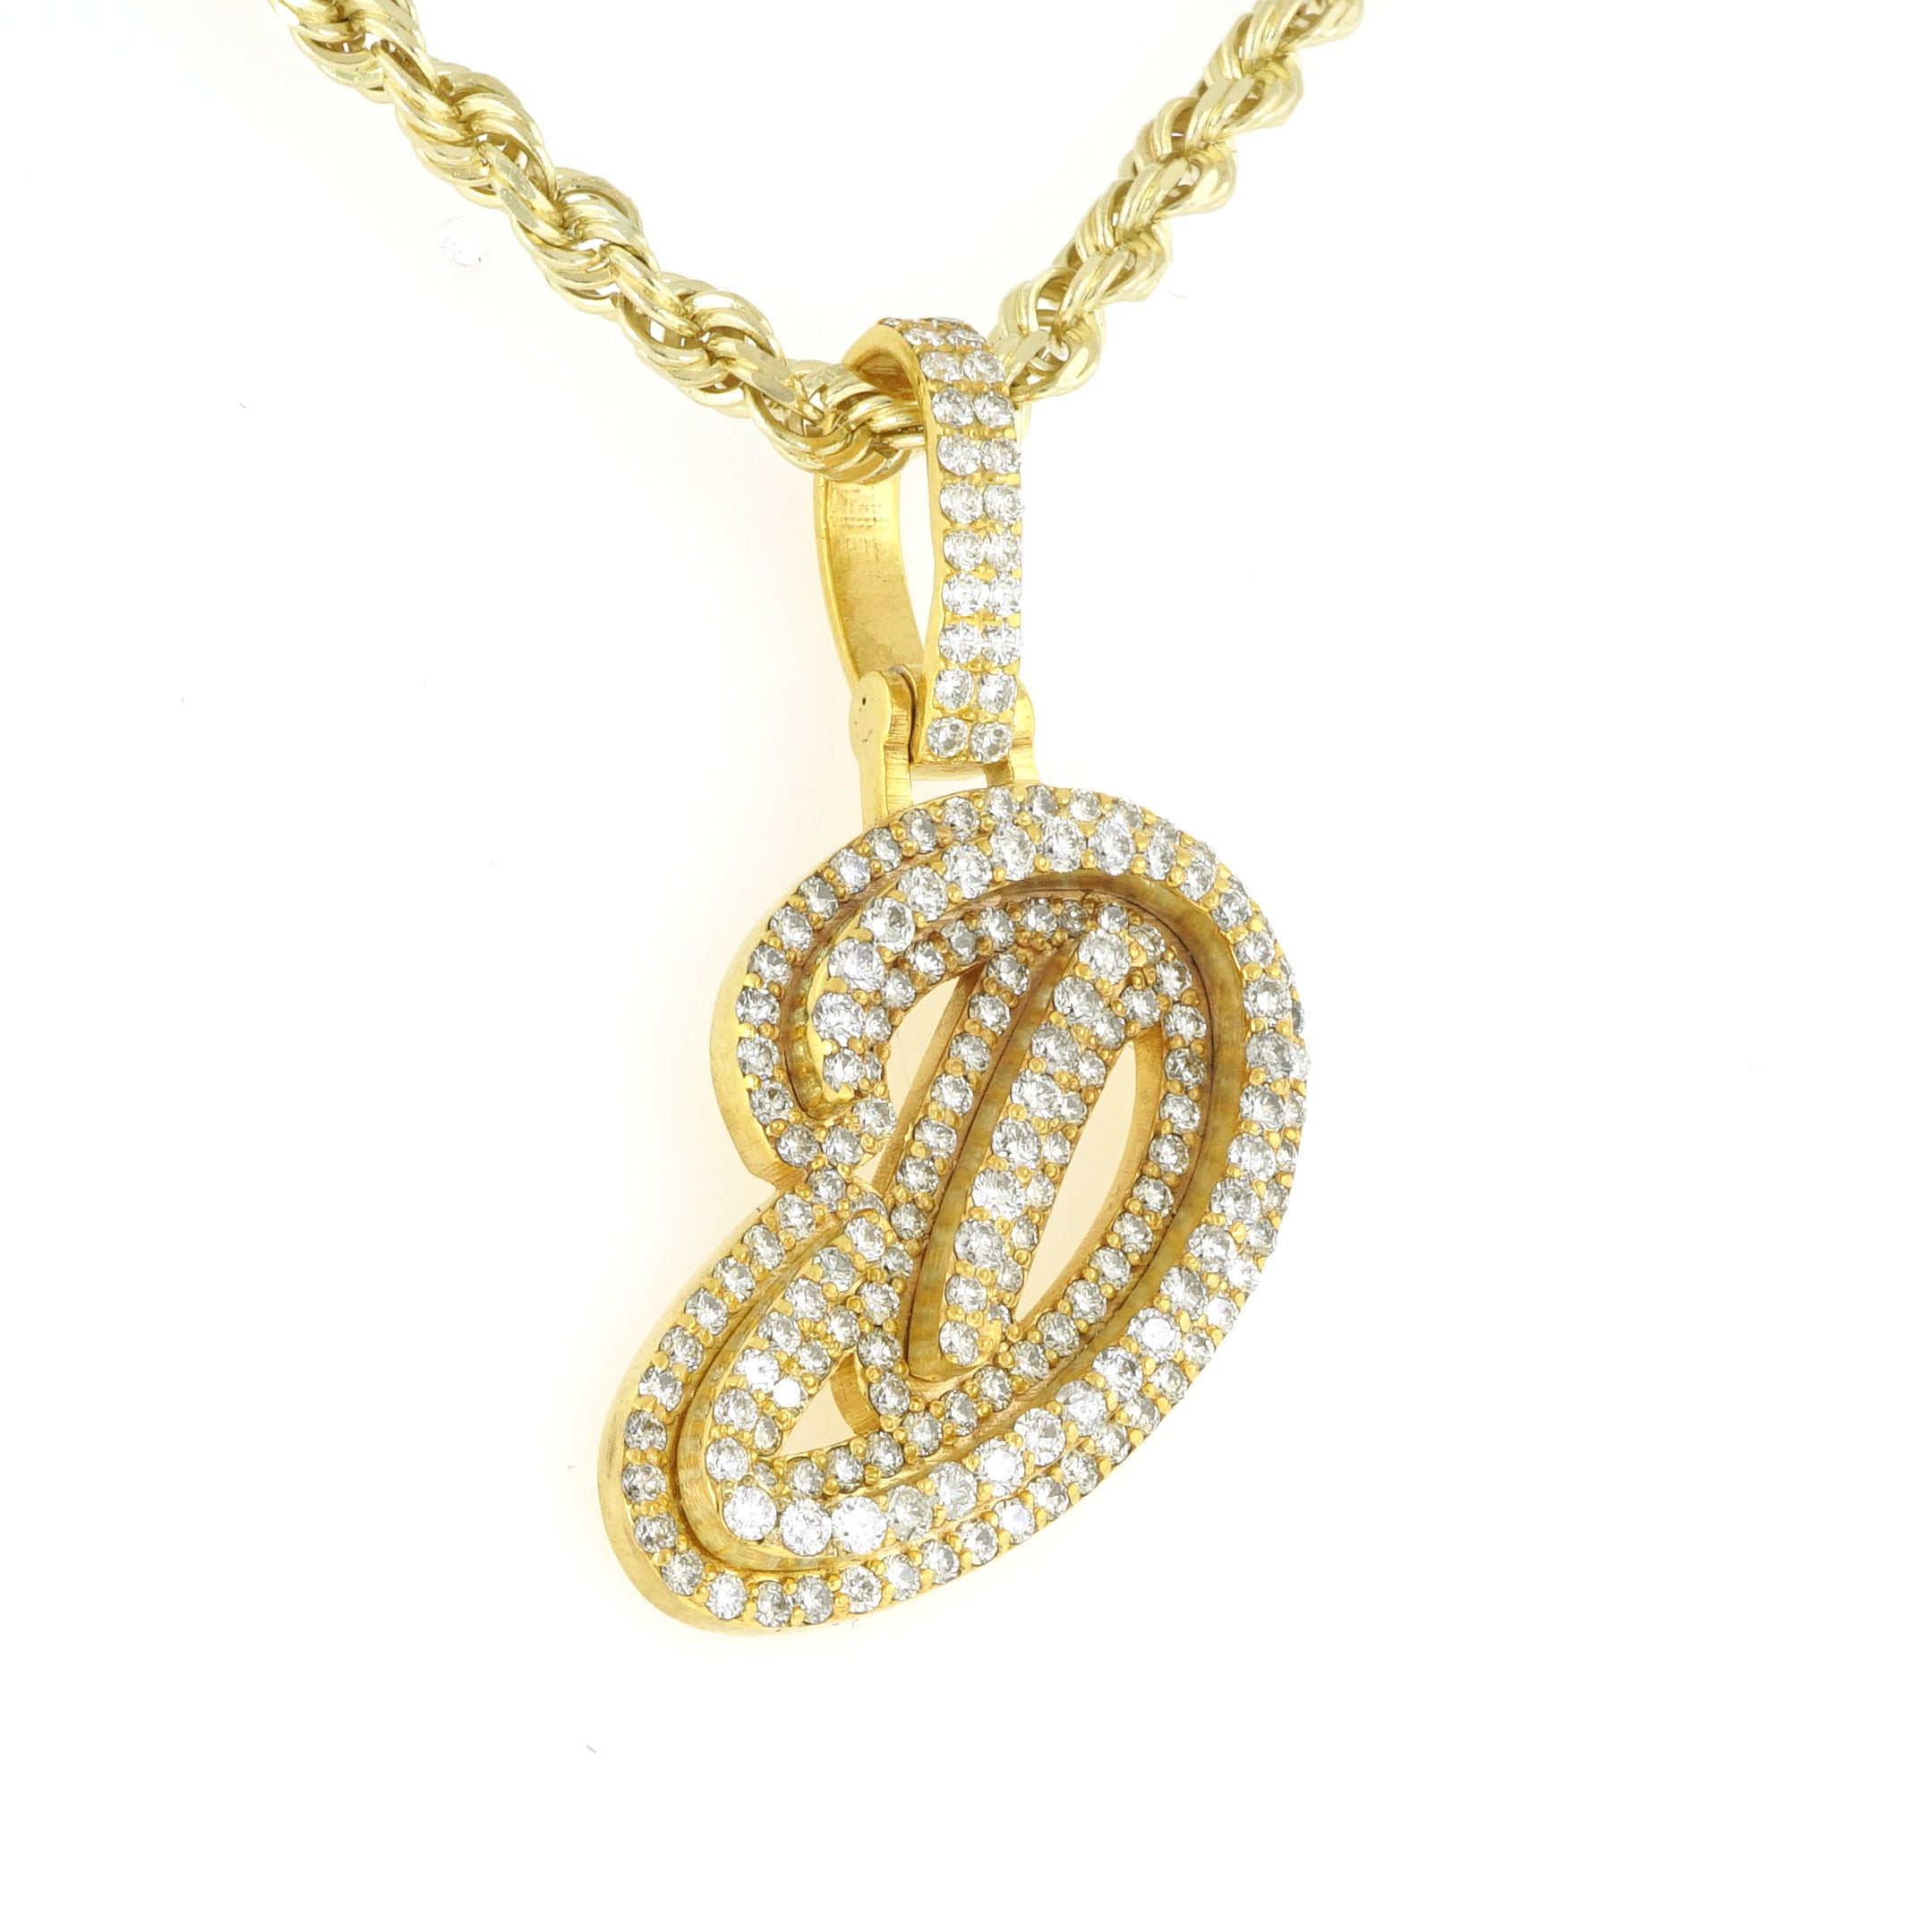 10K Yellow Gold Real Diamond Cursive Initial Letter Pendant 2.75CT